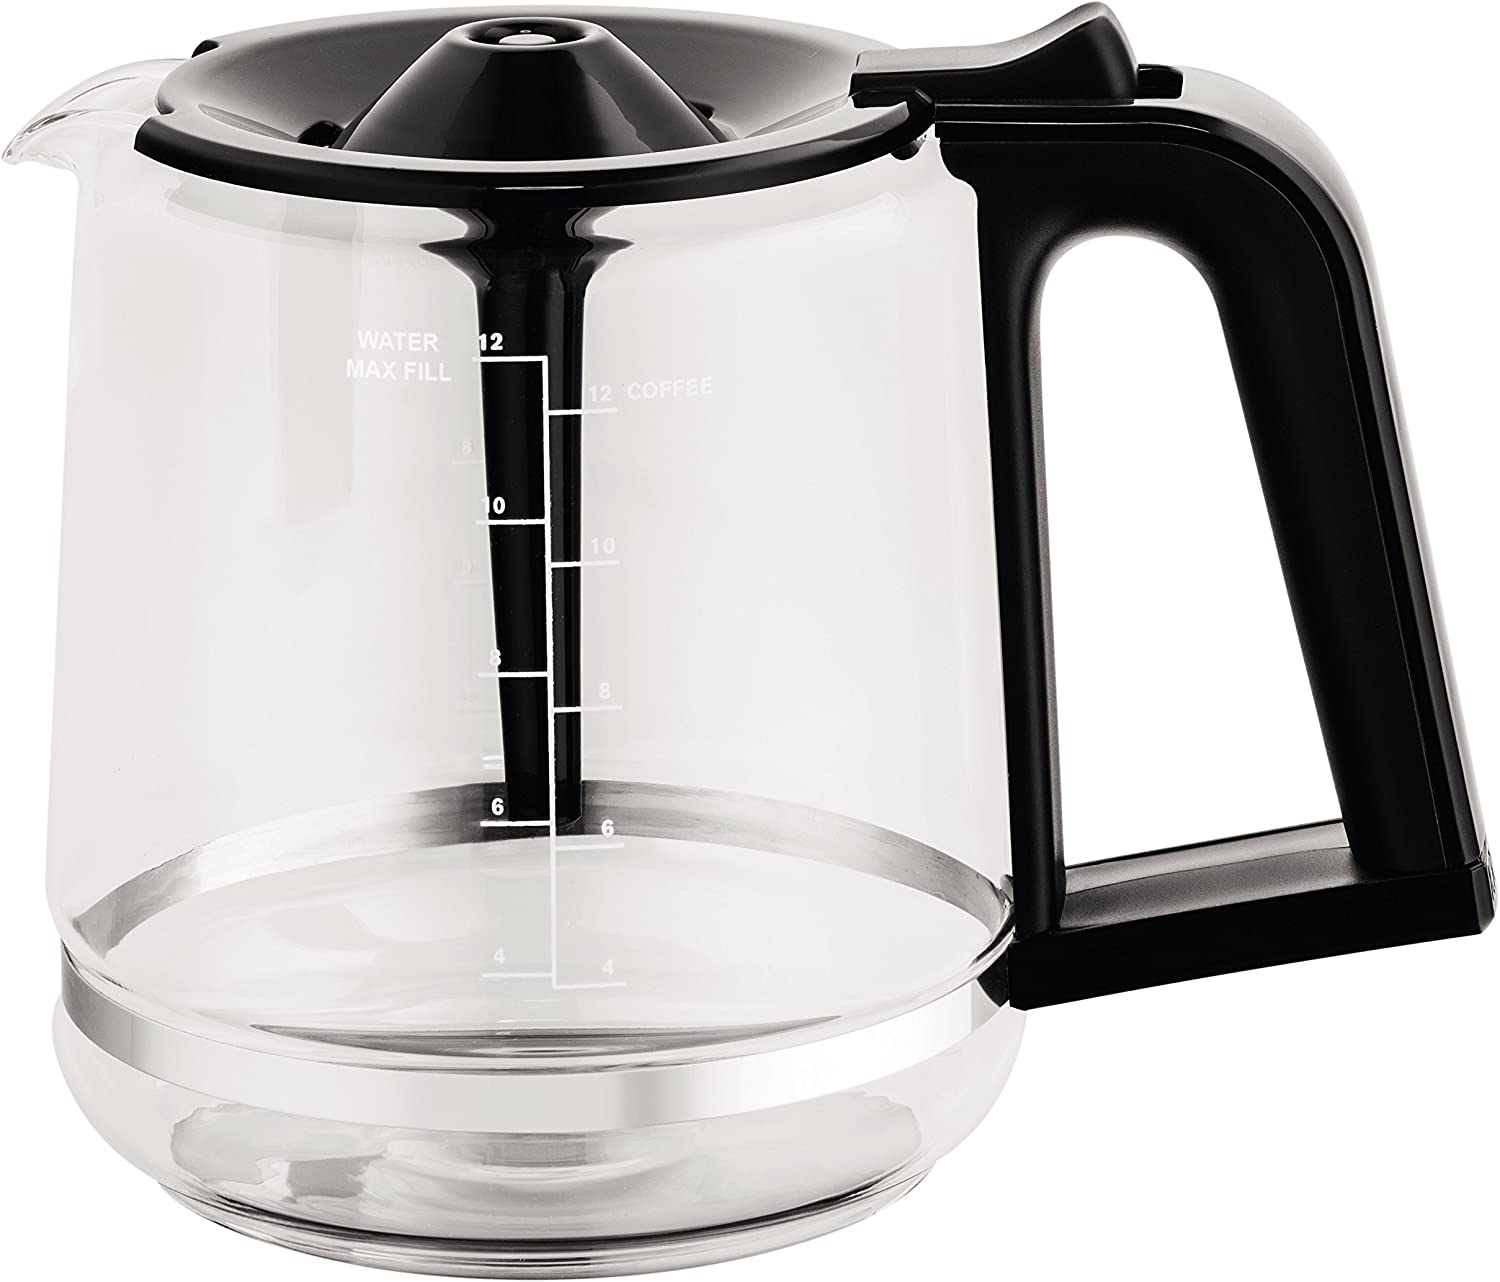 KRUPS XB112050 Replacement Carafe Compatible with EC3110 EC3130 EC3140, Capacity, 12 Glass Cups